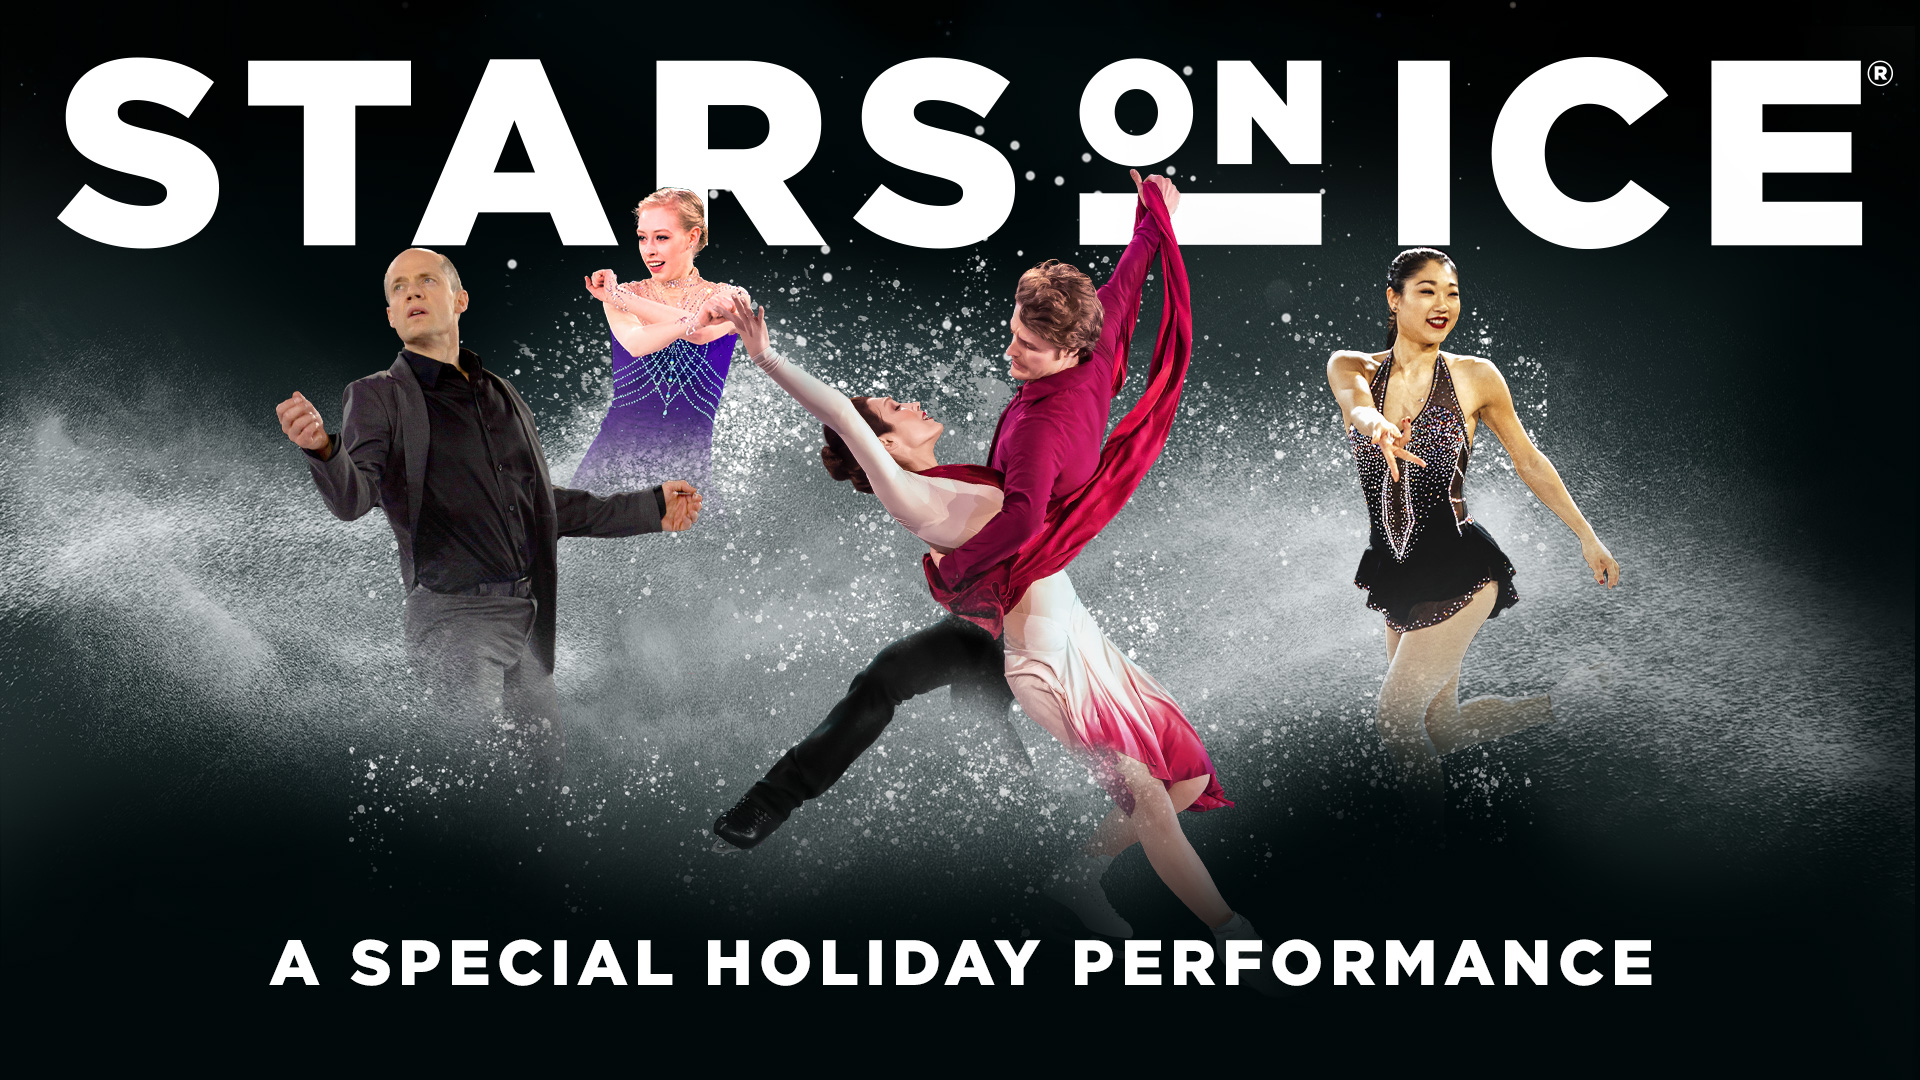 Image of current Stars On Ice skaters overlaying a black background, silouetted by show frosting and sprinkles in white.